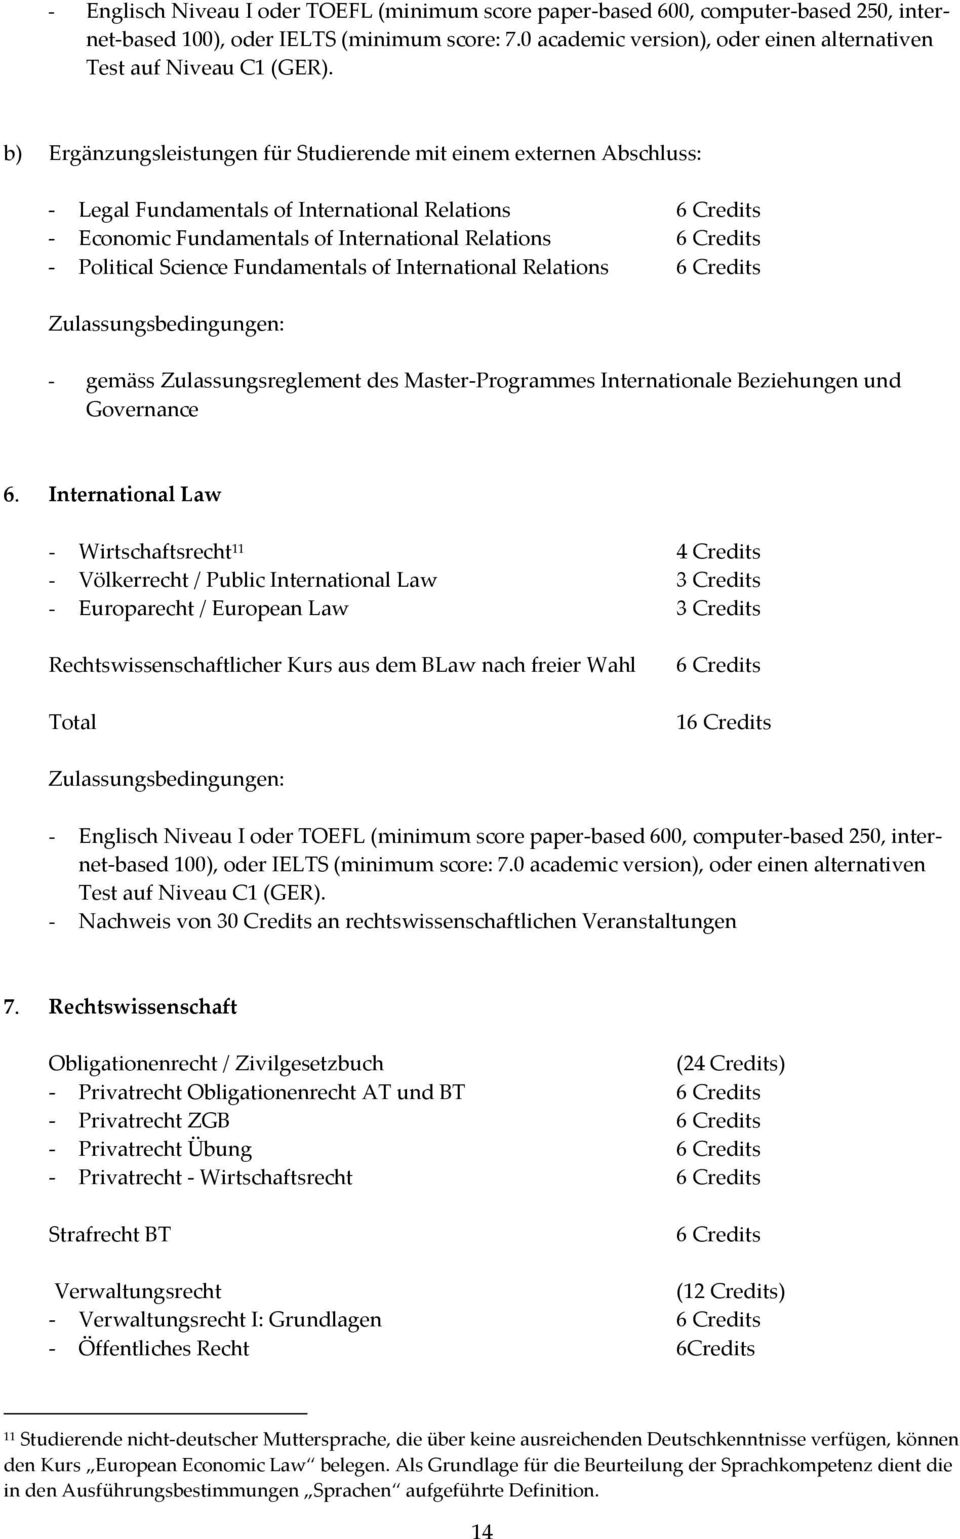 b) Ergänzungsleistungen für Studierende mit einem externen Abschluss: Legal Fundamentals of International Relations 6 Credits Economic Fundamentals of International Relations 6 Credits Political